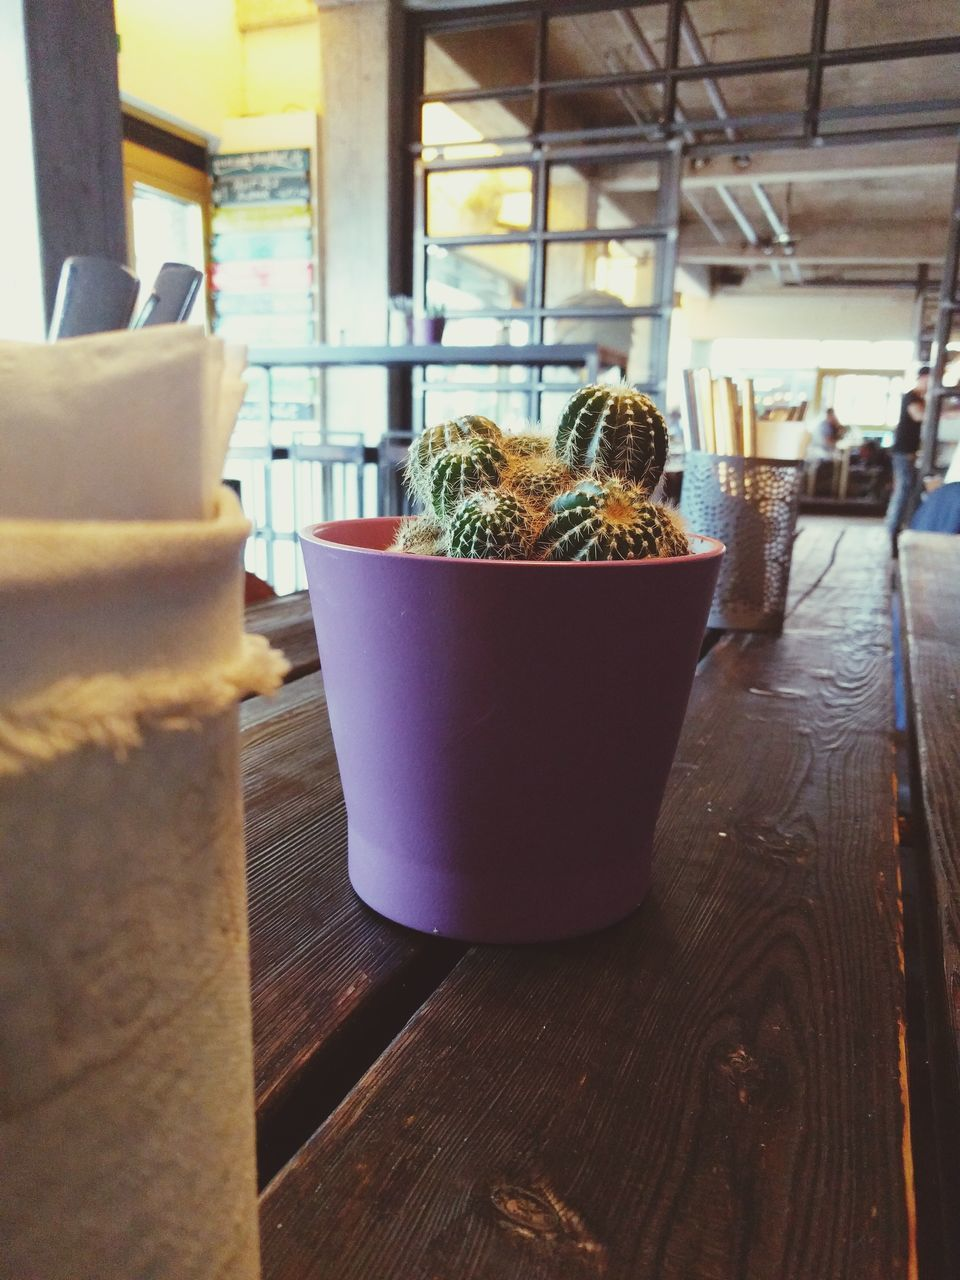 indoors, potted plant, table, no people, close-up, food and drink, focus on foreground, still life, food, growth, plant, day, wood - material, cactus, freshness, nature, business, restaurant, succulent plant, flower pot